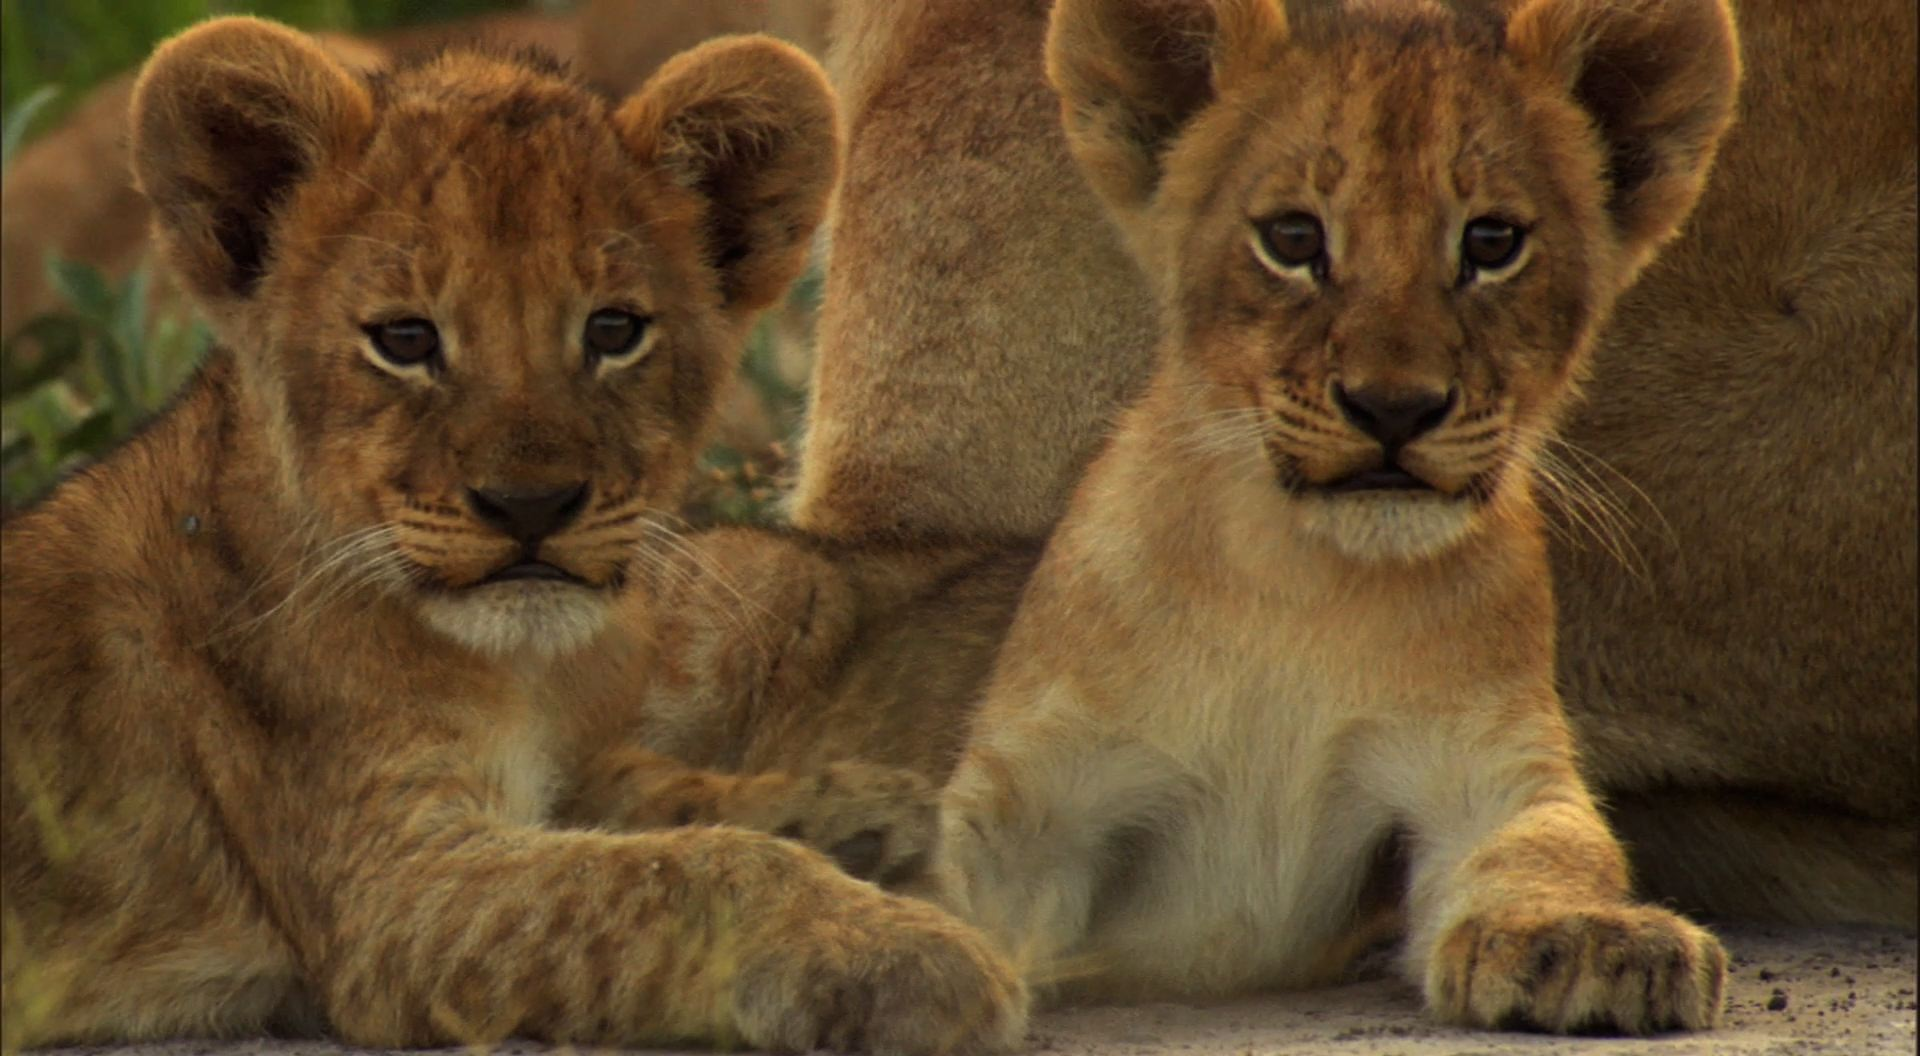 Cute Lion Cubs wallpaper   Click picture for high resolution HD 1920x1056